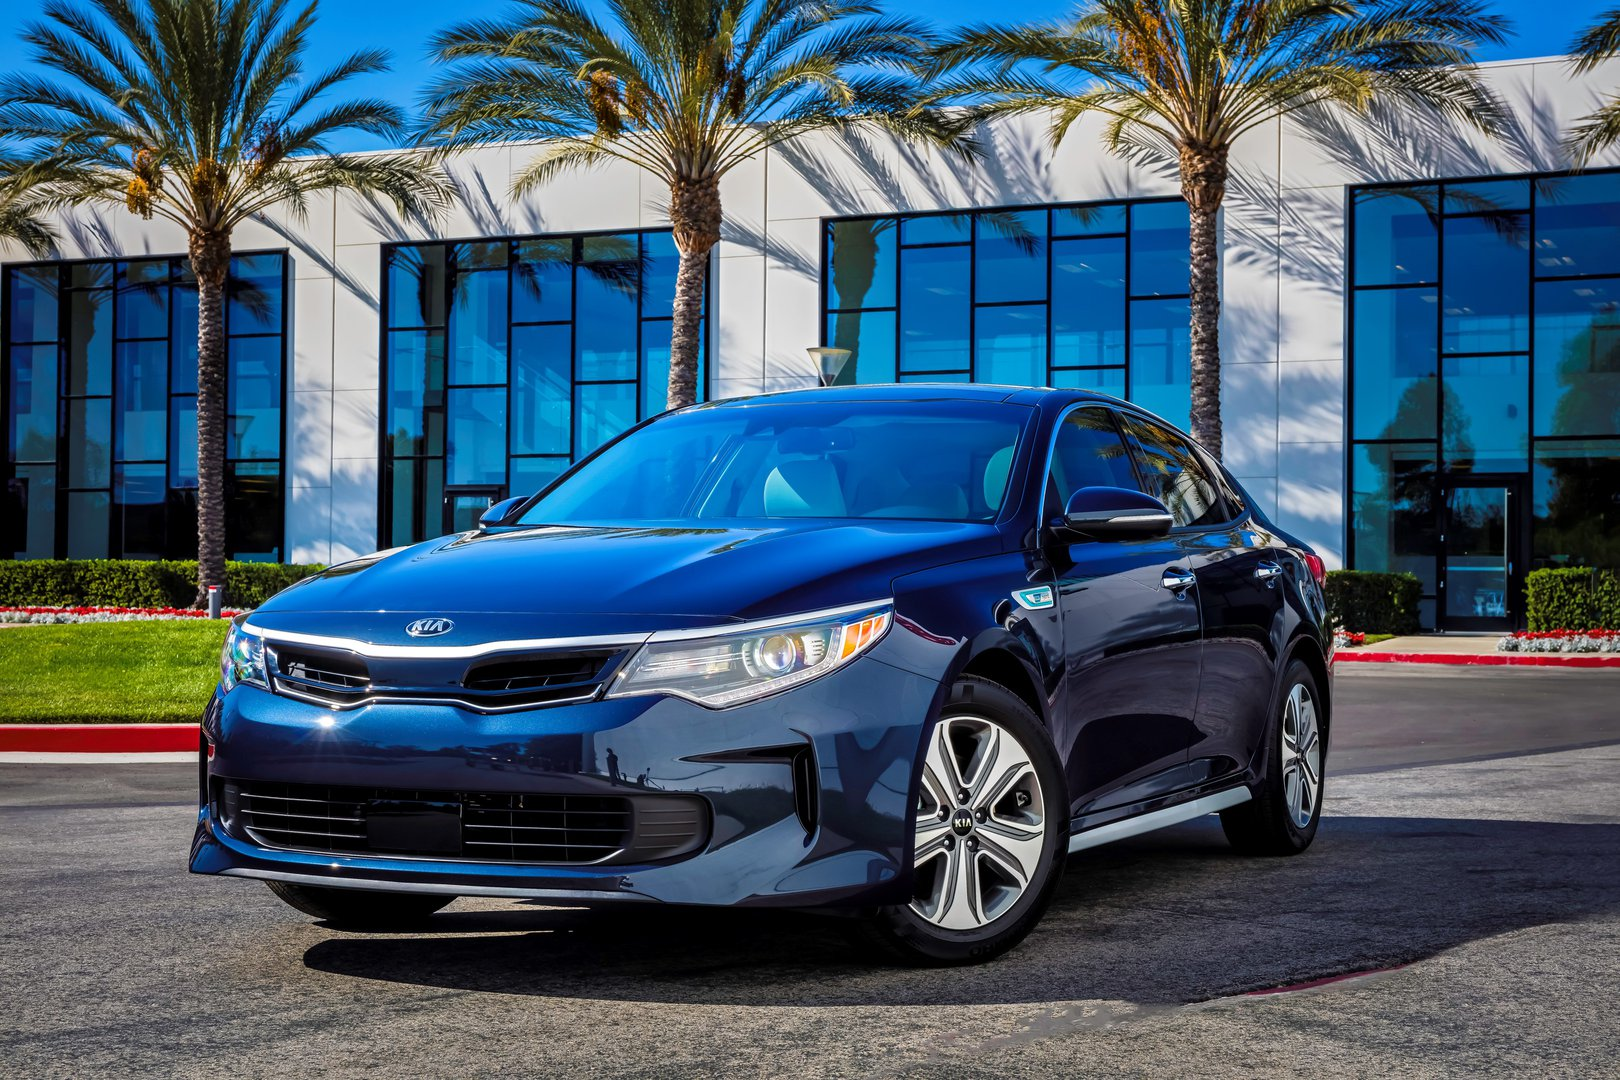 test chase chris hybrid drive optima kia review expert